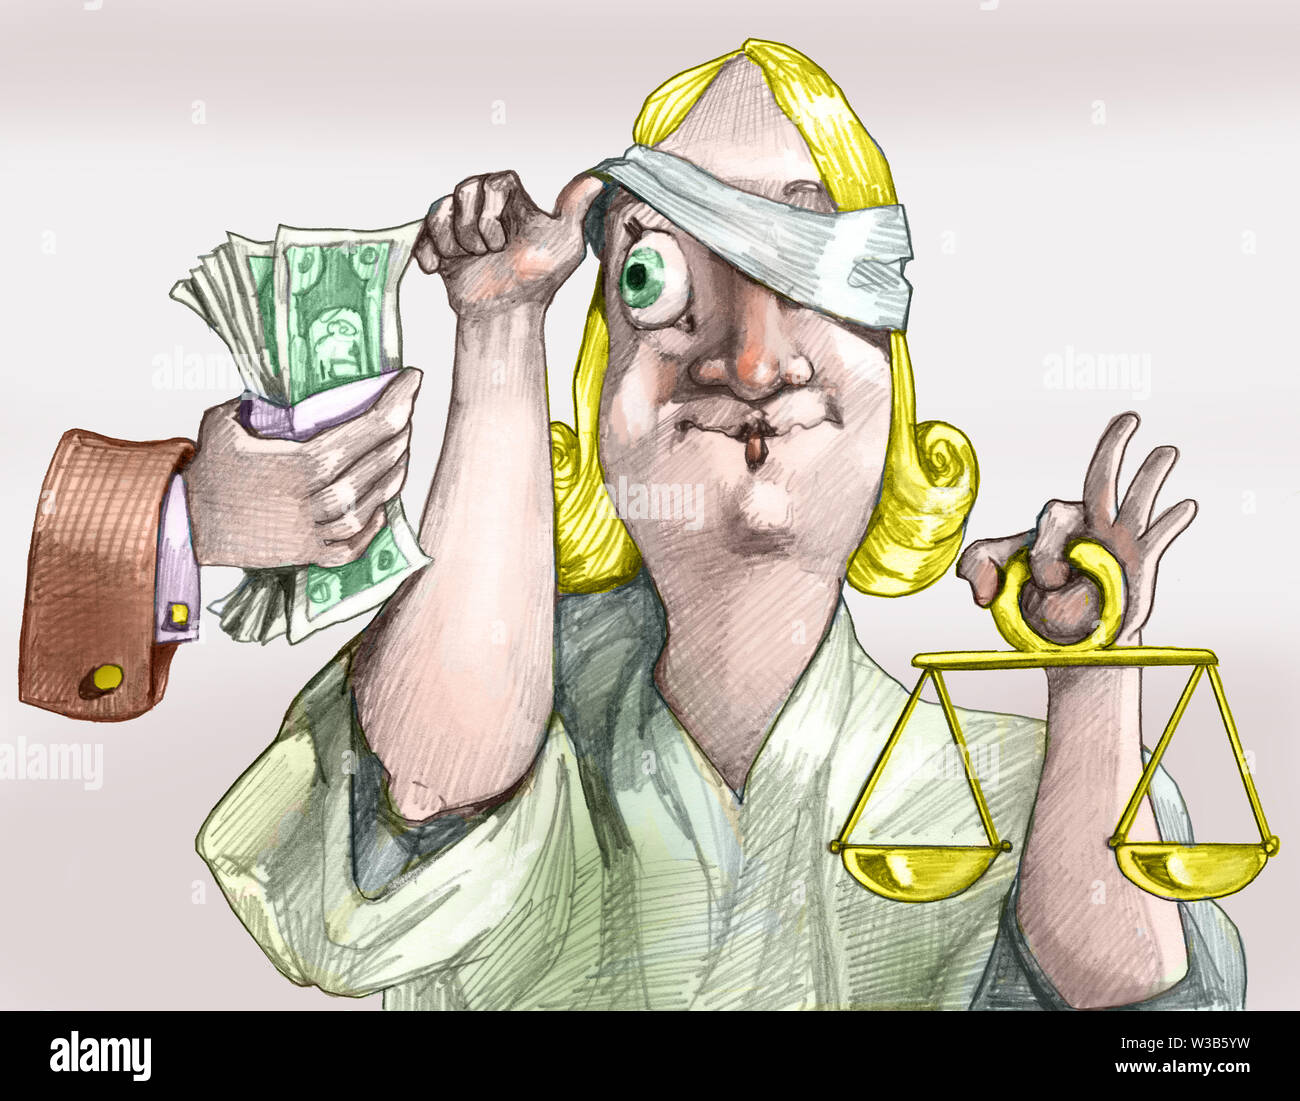 a hand offers money to justice and she moves the bandage to look greedy political cartoon - Stock Image